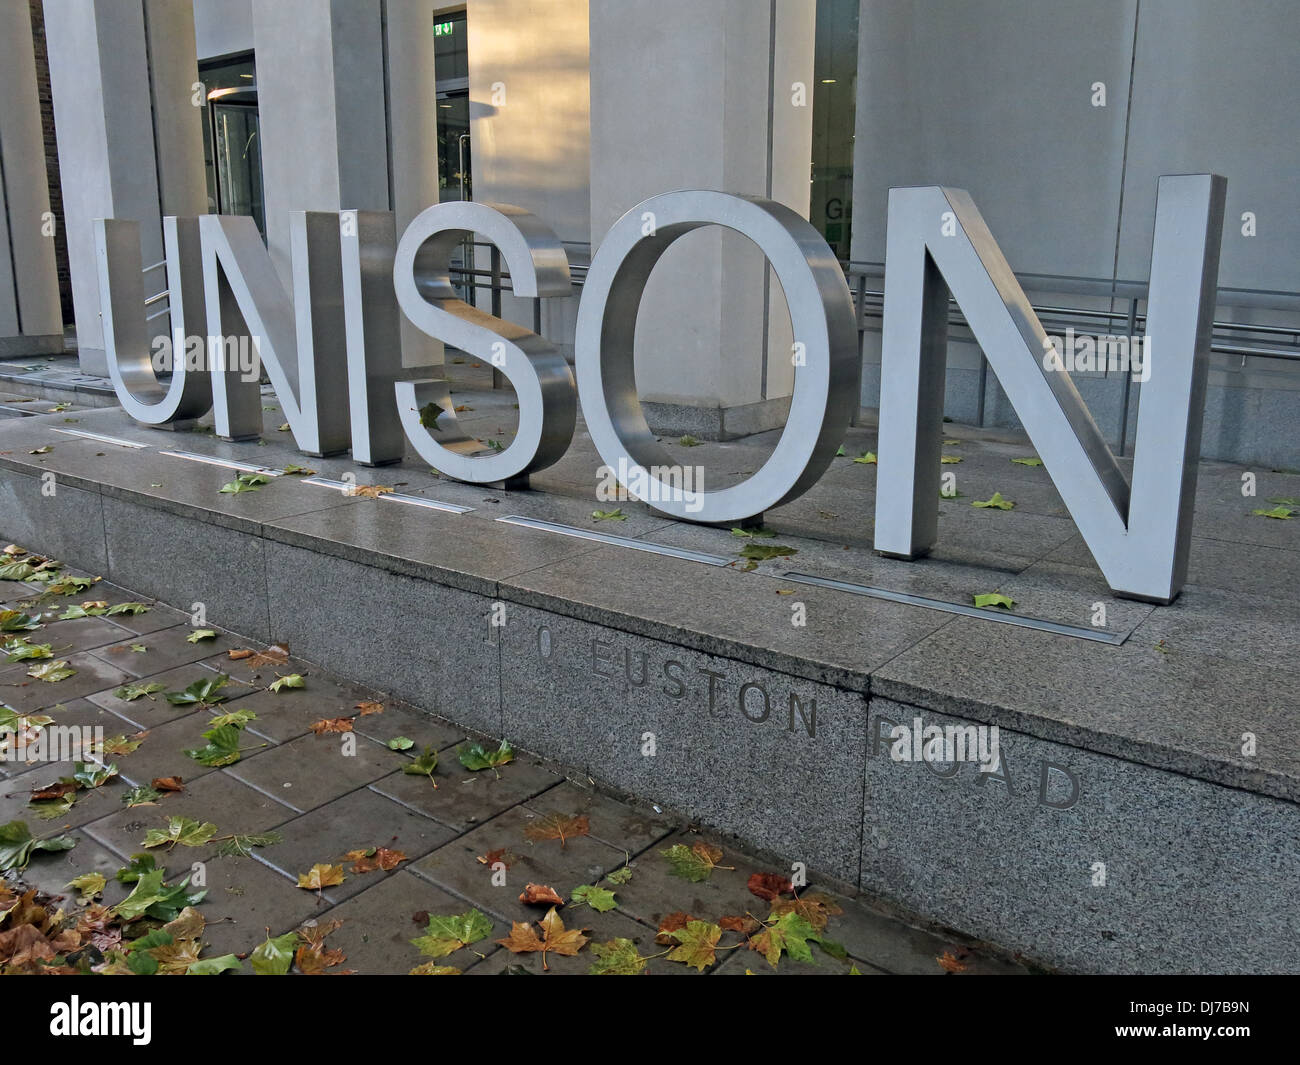 Unison building 130 Euston rd London England UK - Stock Image